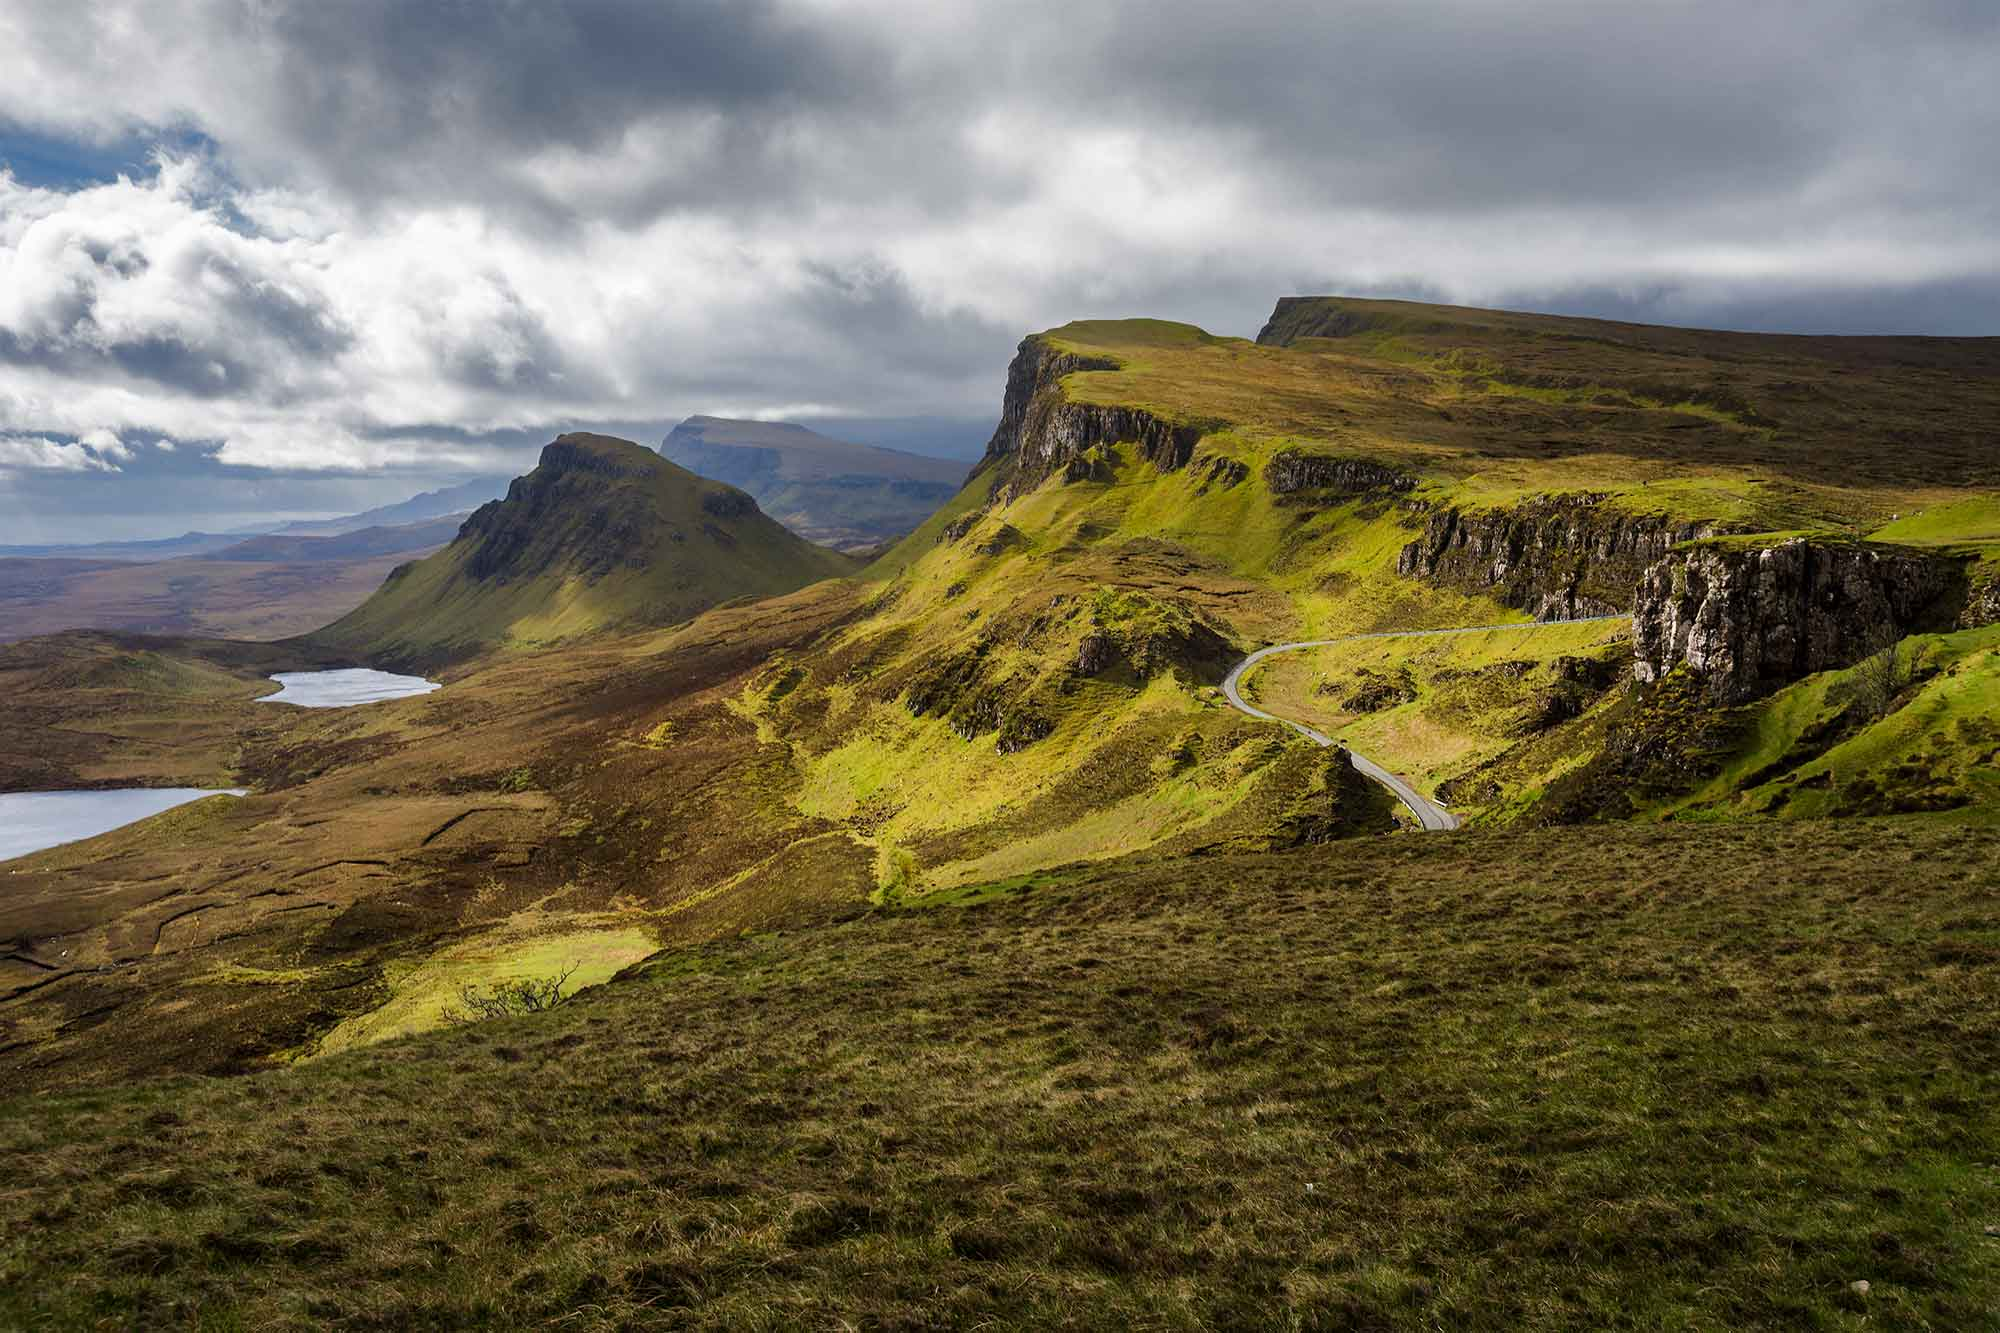 The Quiraing is an essential walk for any photographer as it passes though some of the most spectacular landscapes in Scotland. © ULLI MAIER & NISA MAIER